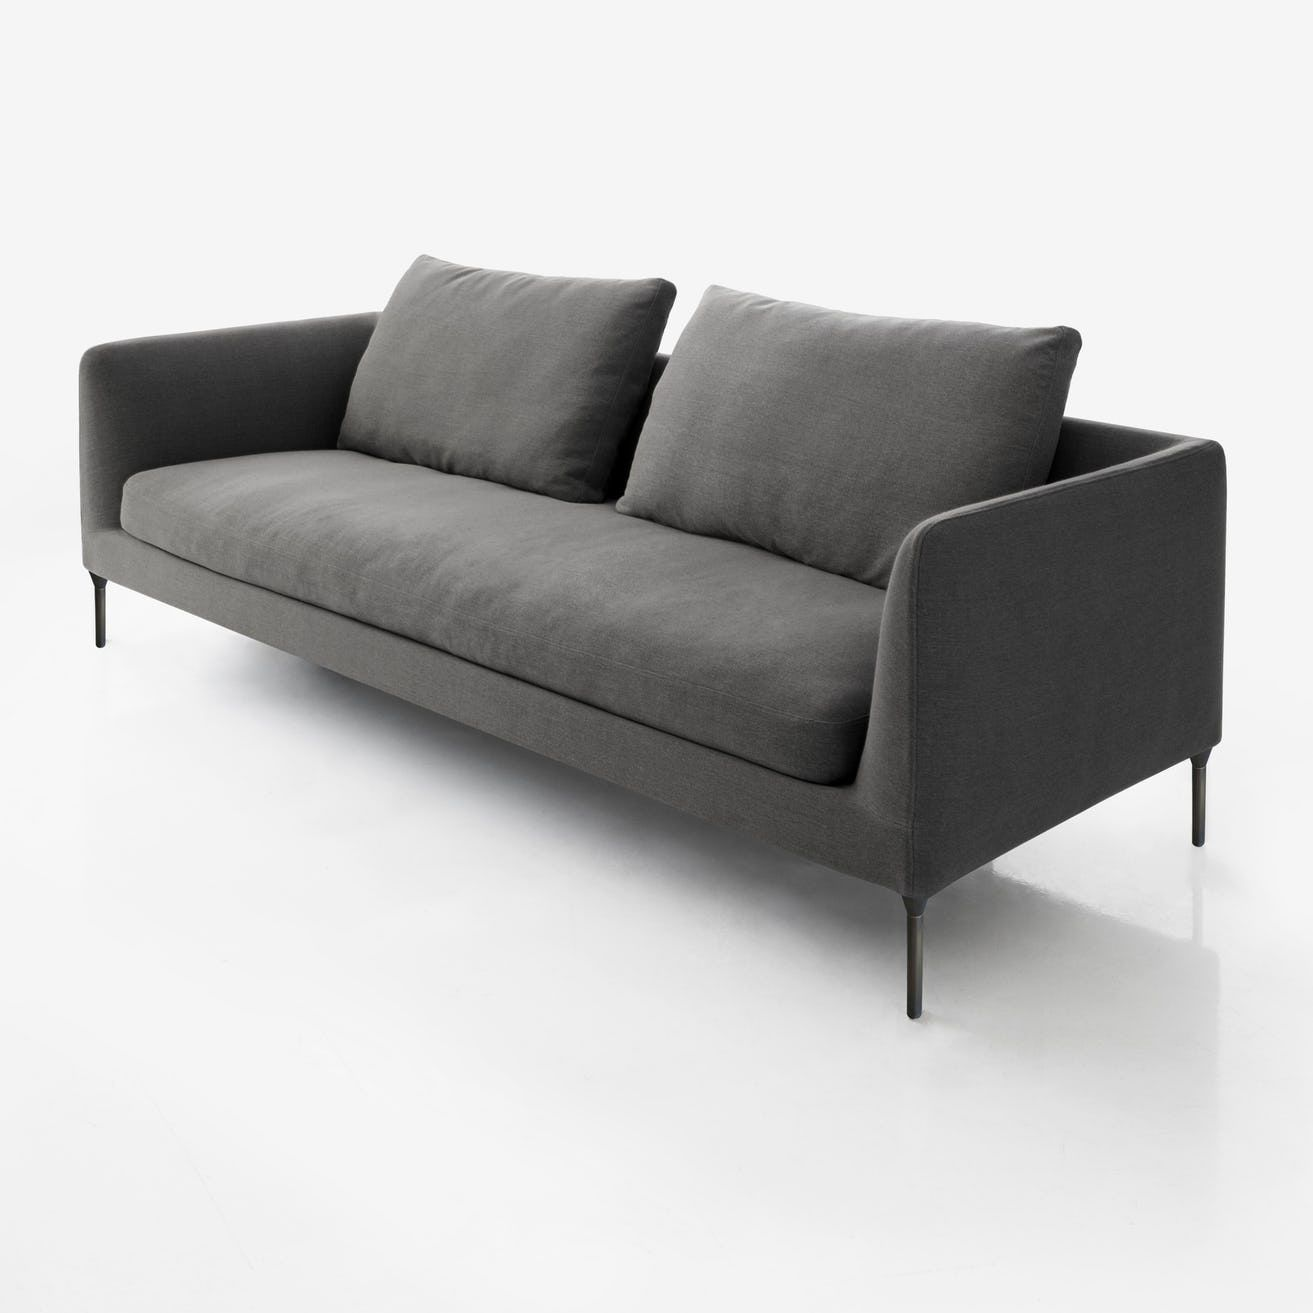 Delta Sofa By Bensen Furniture Now Available At Haute Living